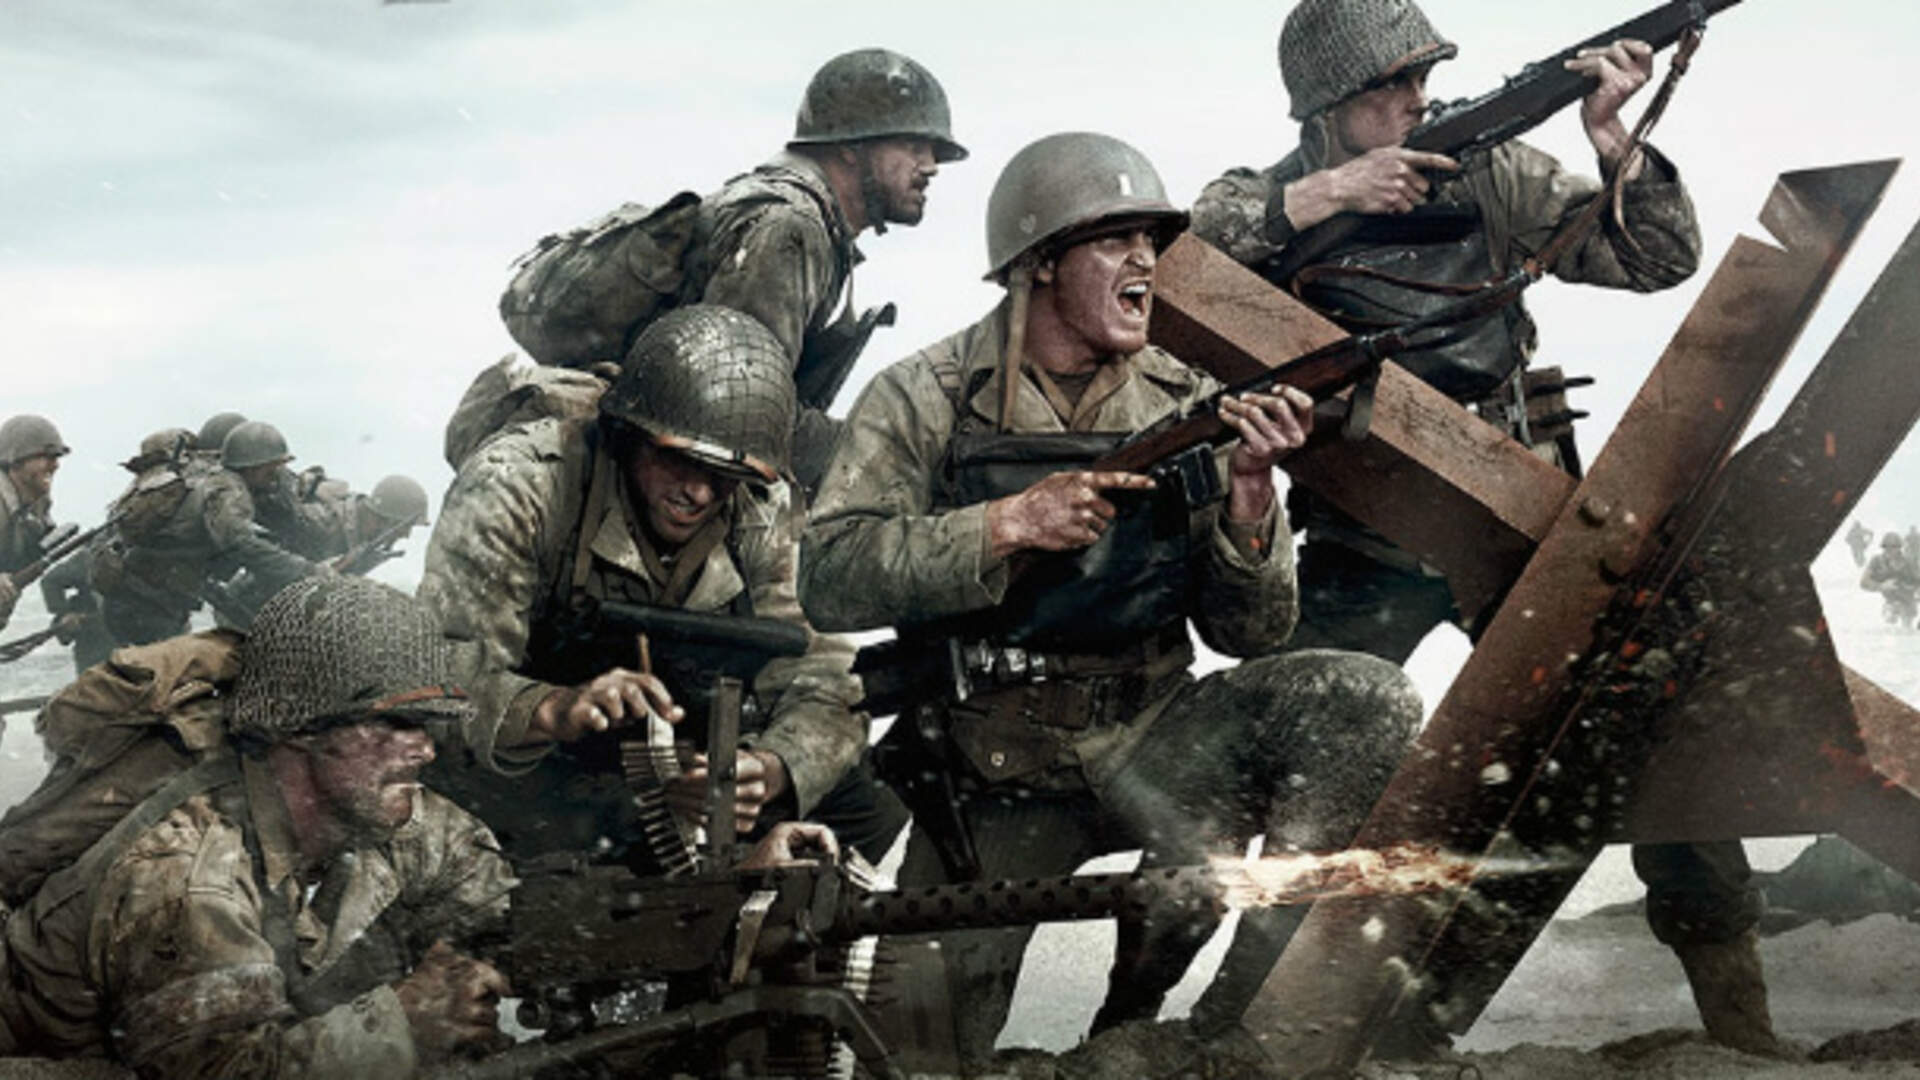 Major Call of Duty: WW2 Multiplayer Patch Released, Server Issues Persist [Update]